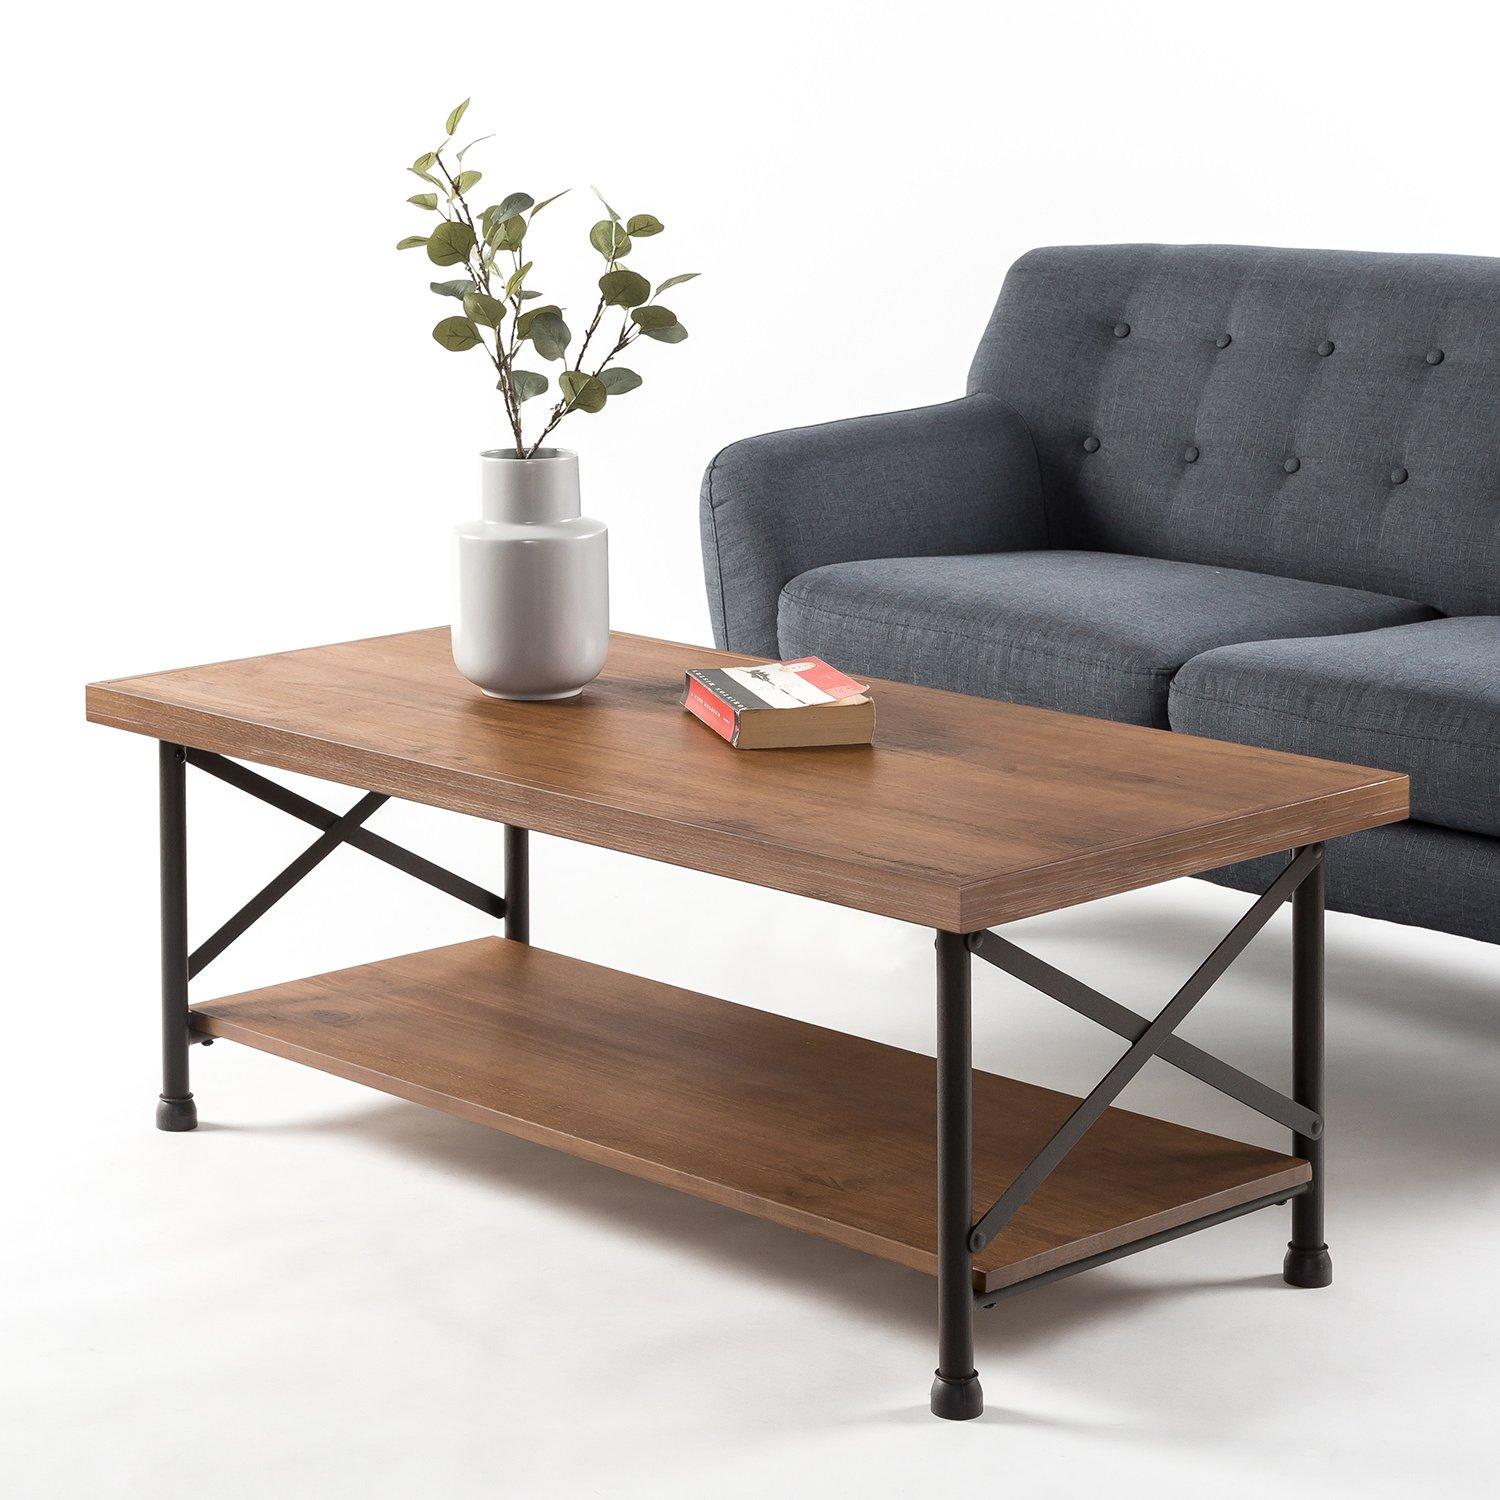 Zinus Industrial Style Coffee Table